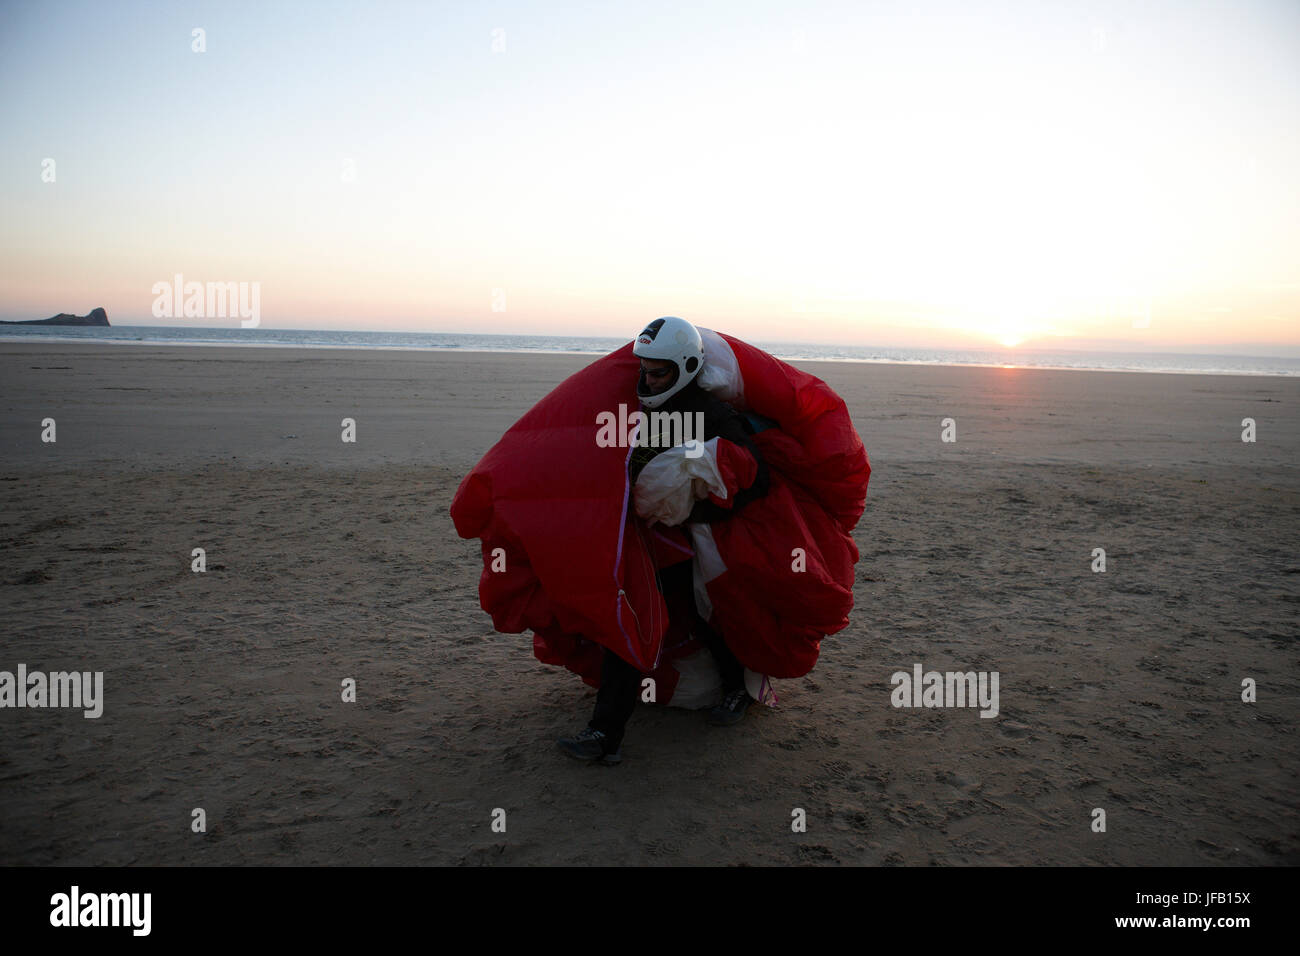 A Paraglider has landed on a beach at sunset, Stock Photo